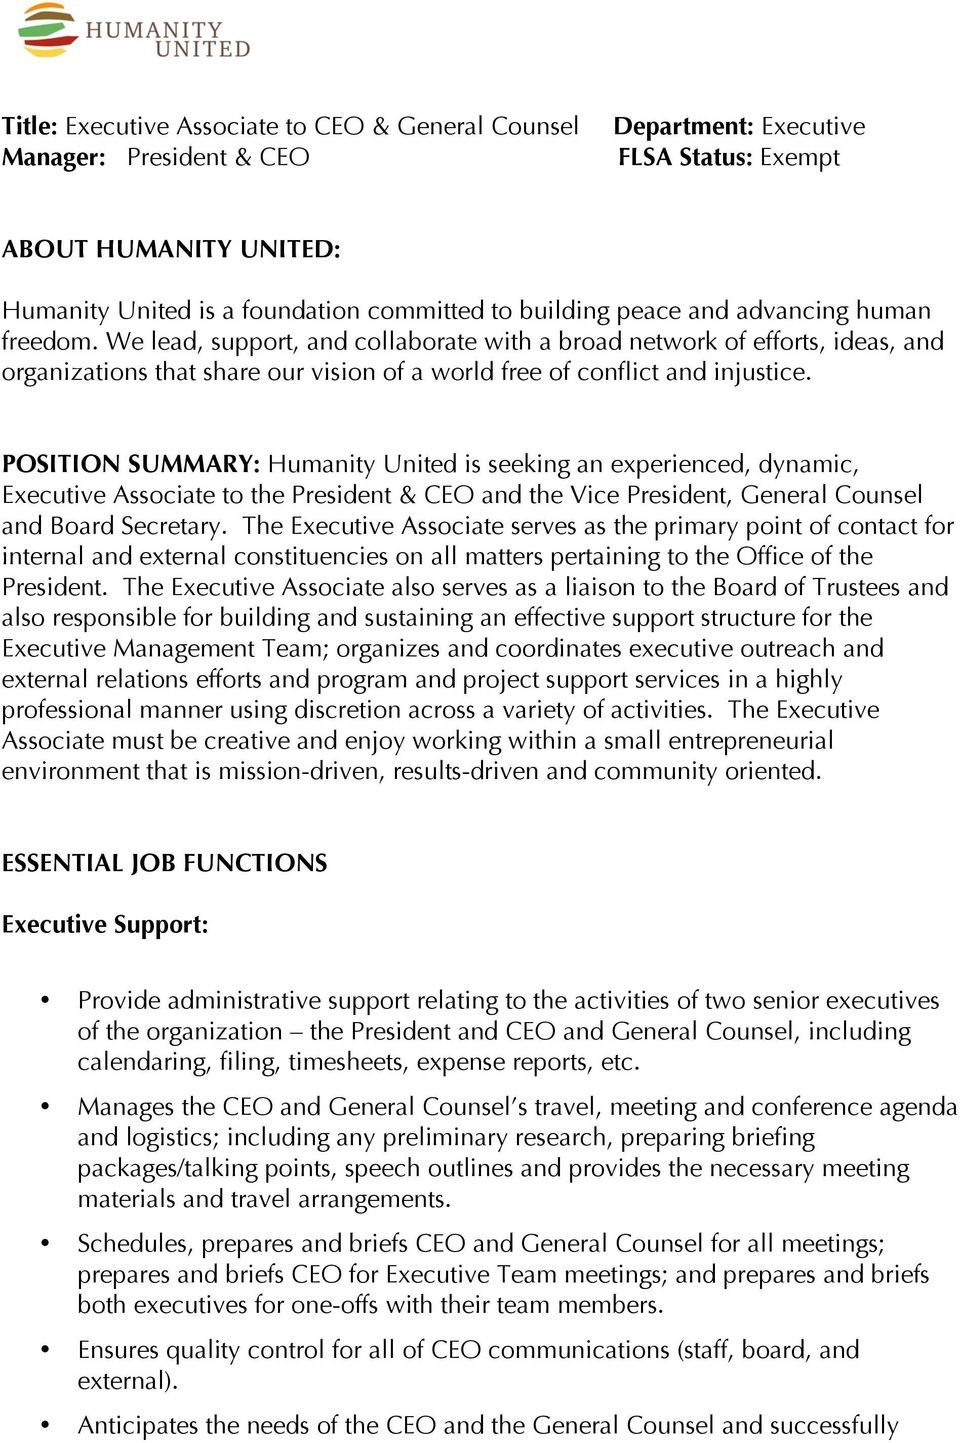 POSITION SUMMARY: Humanity United is seeking an experienced, dynamic, Executive Associate to the President & CEO and the Vice President, General Counsel and Board Secretary.